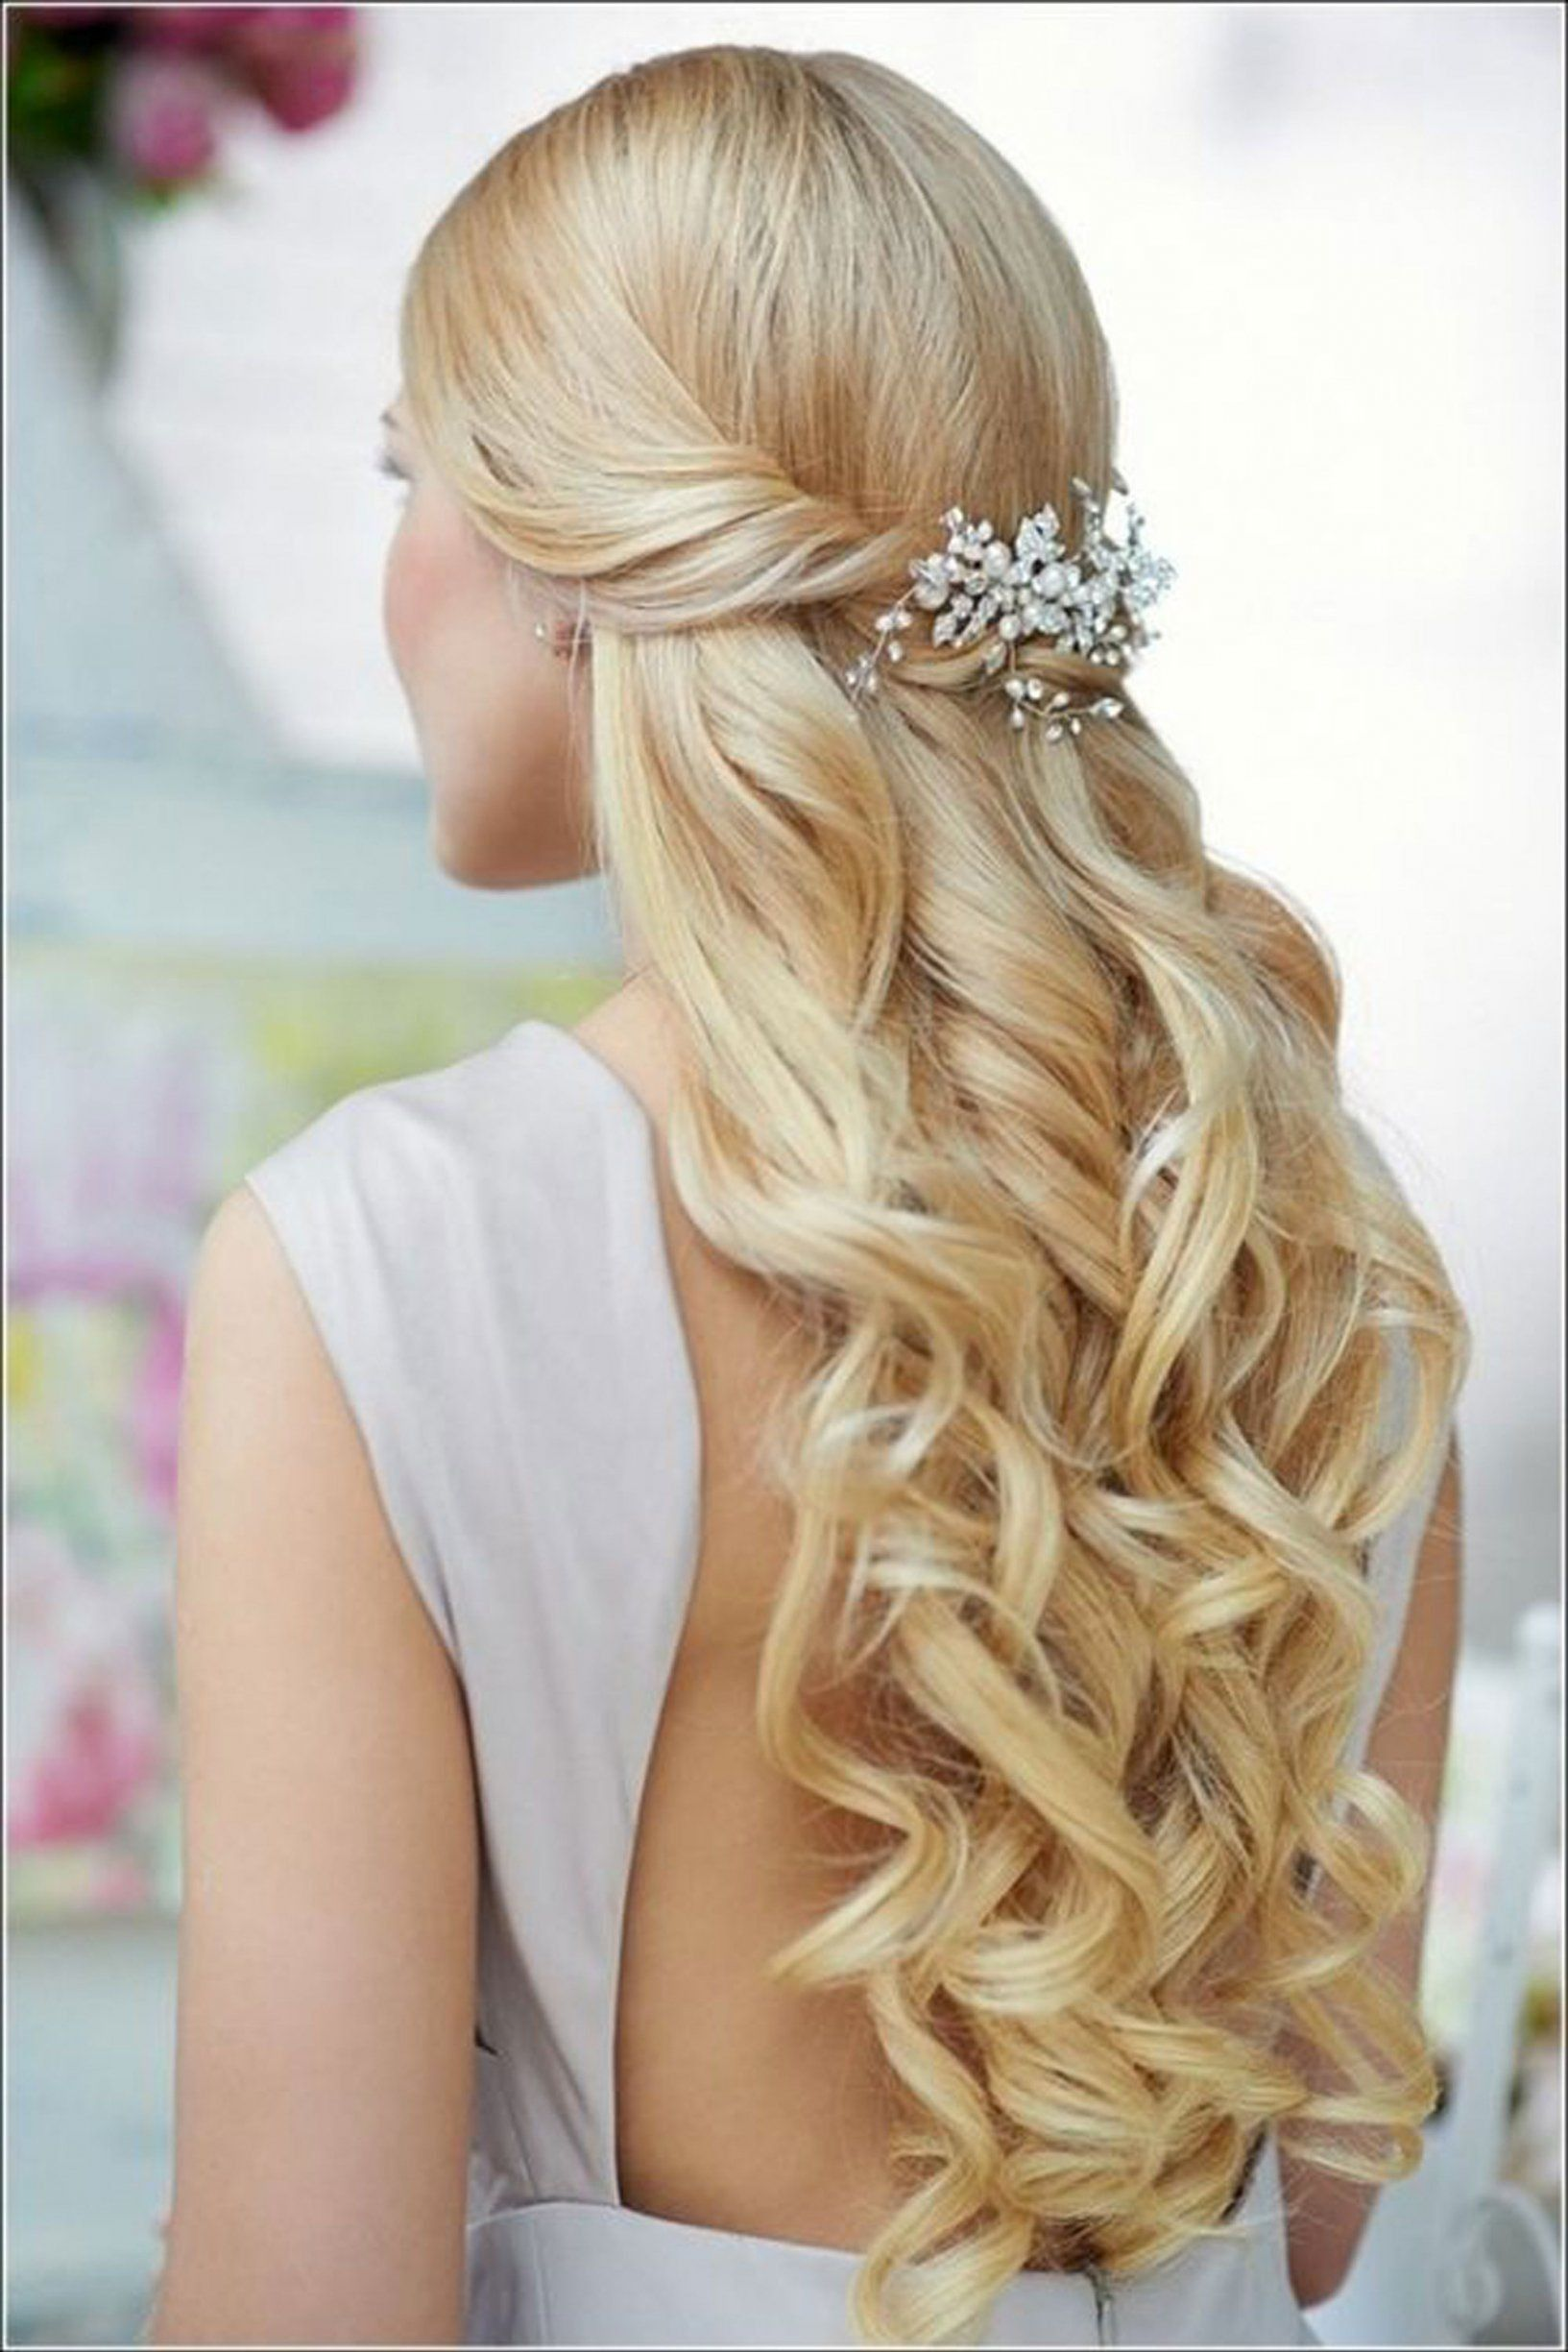 simple wedding hairstyles for long hair | hair routines